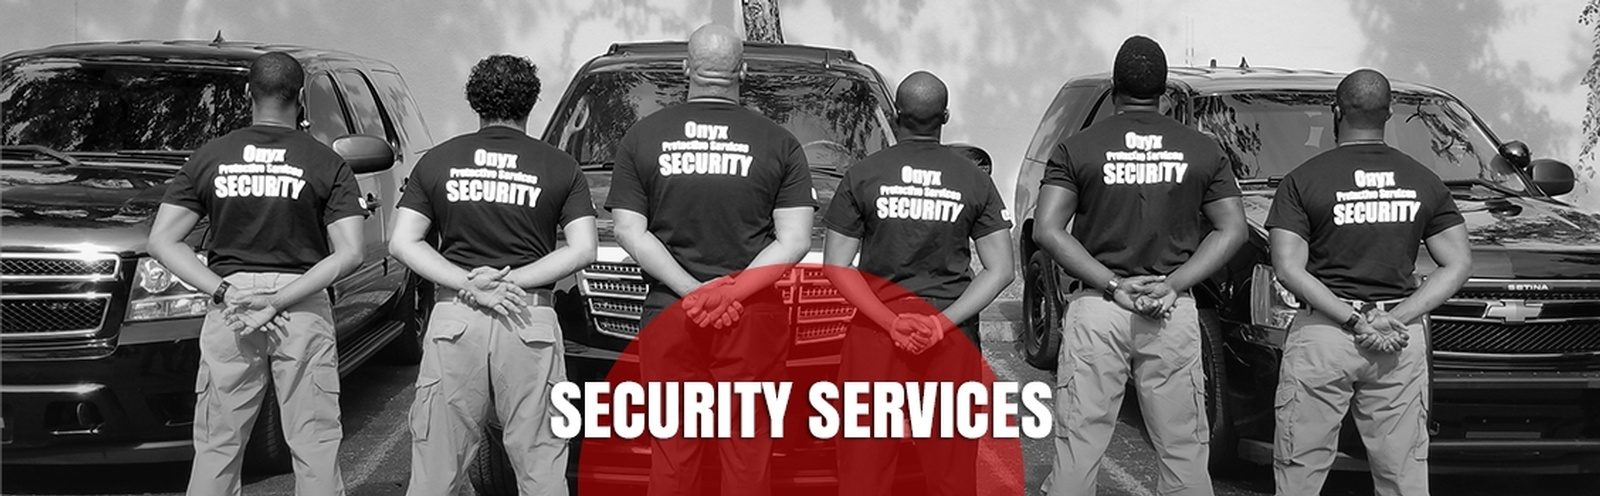 Security Guard Services Miami FL